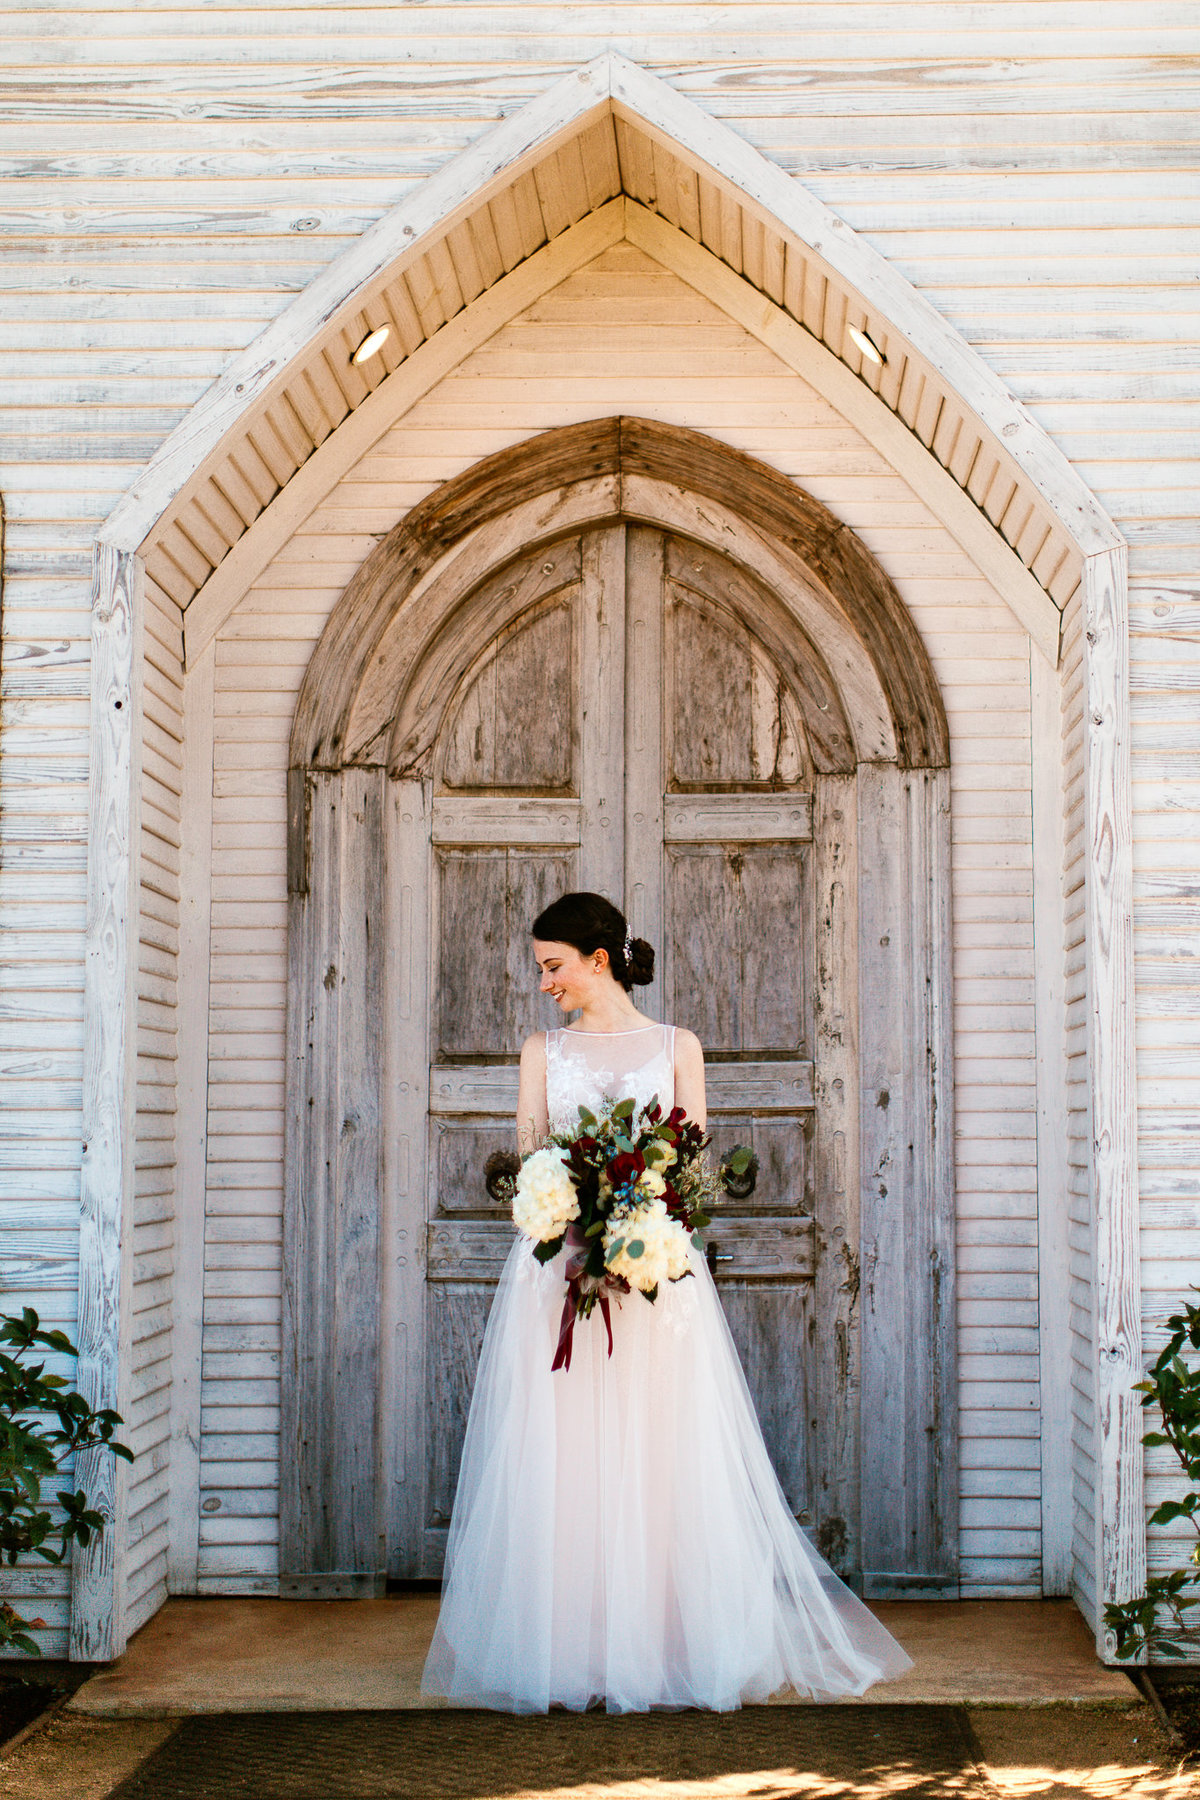 madeline_c_photography_dallas_wedding_photographer_megan_connor-22